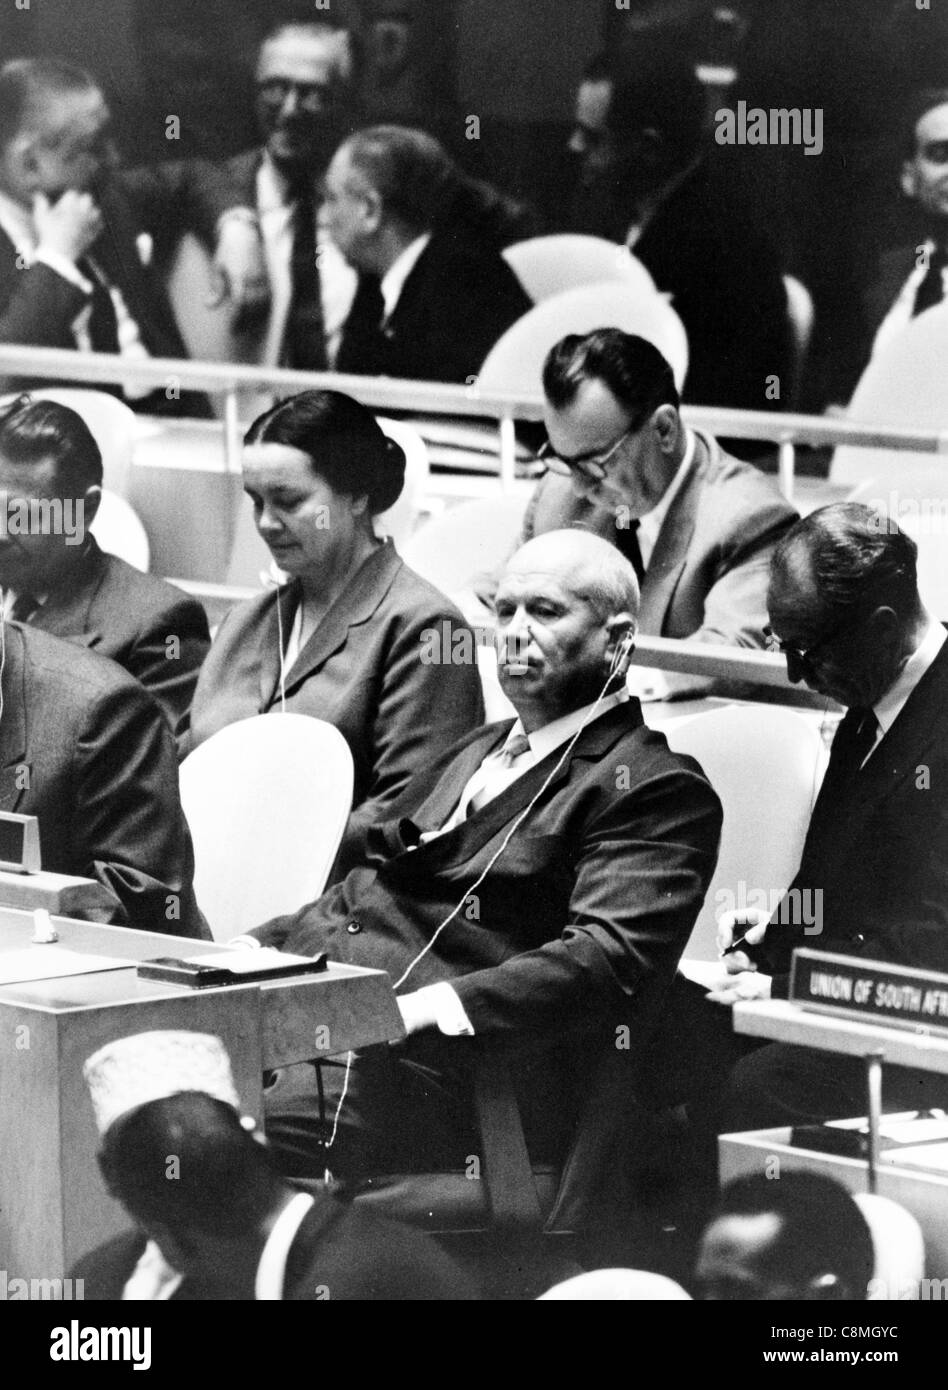 Nikita Khrushchev, leader of the Union of Soviet Socialist Republics, at a meeting of the United Nations General - Stock Image